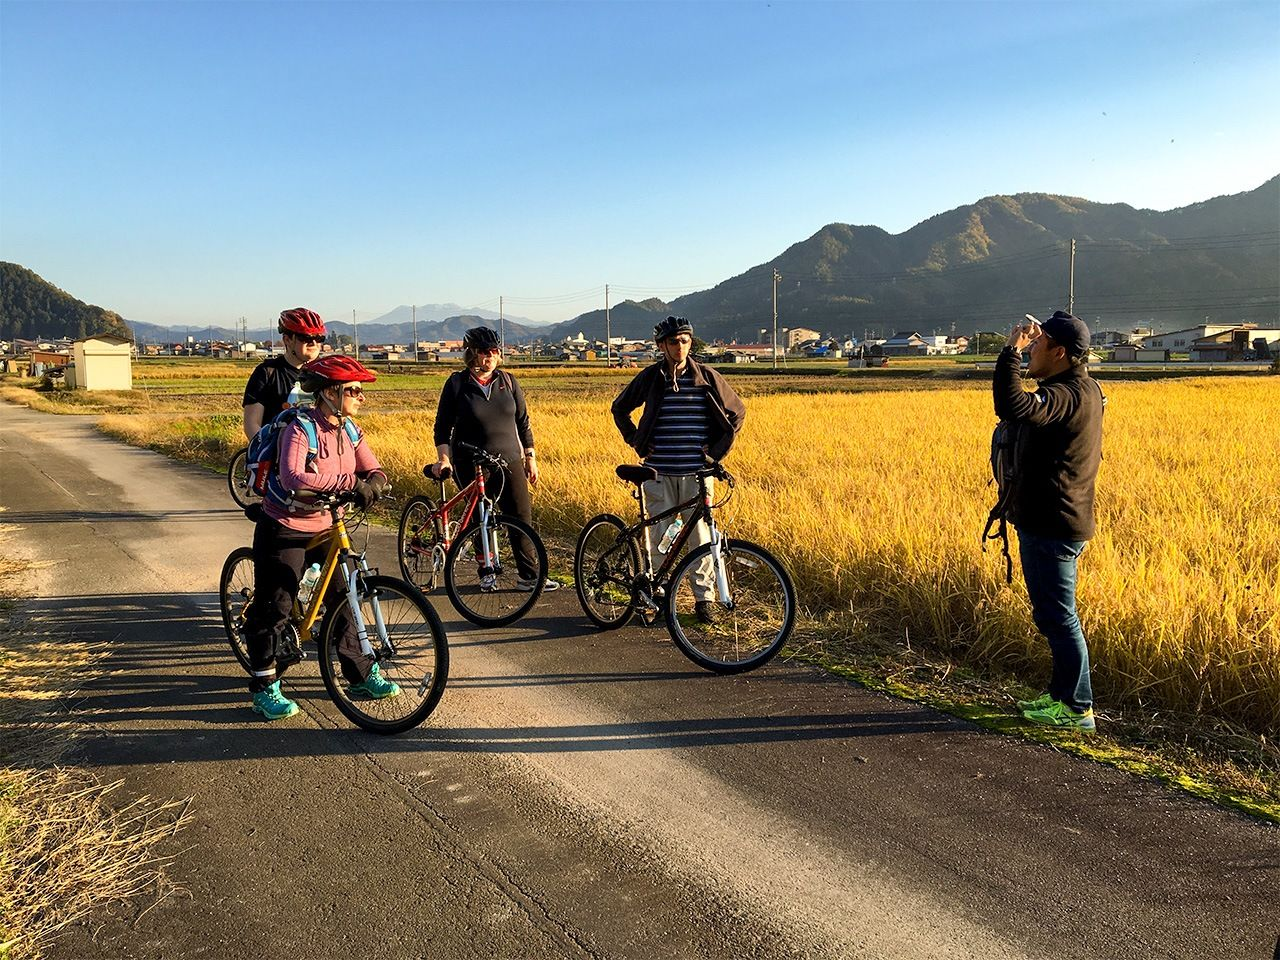 The cyclists dismount on a track between fields for more insights from the guide. (© Demachi Yuzuru)